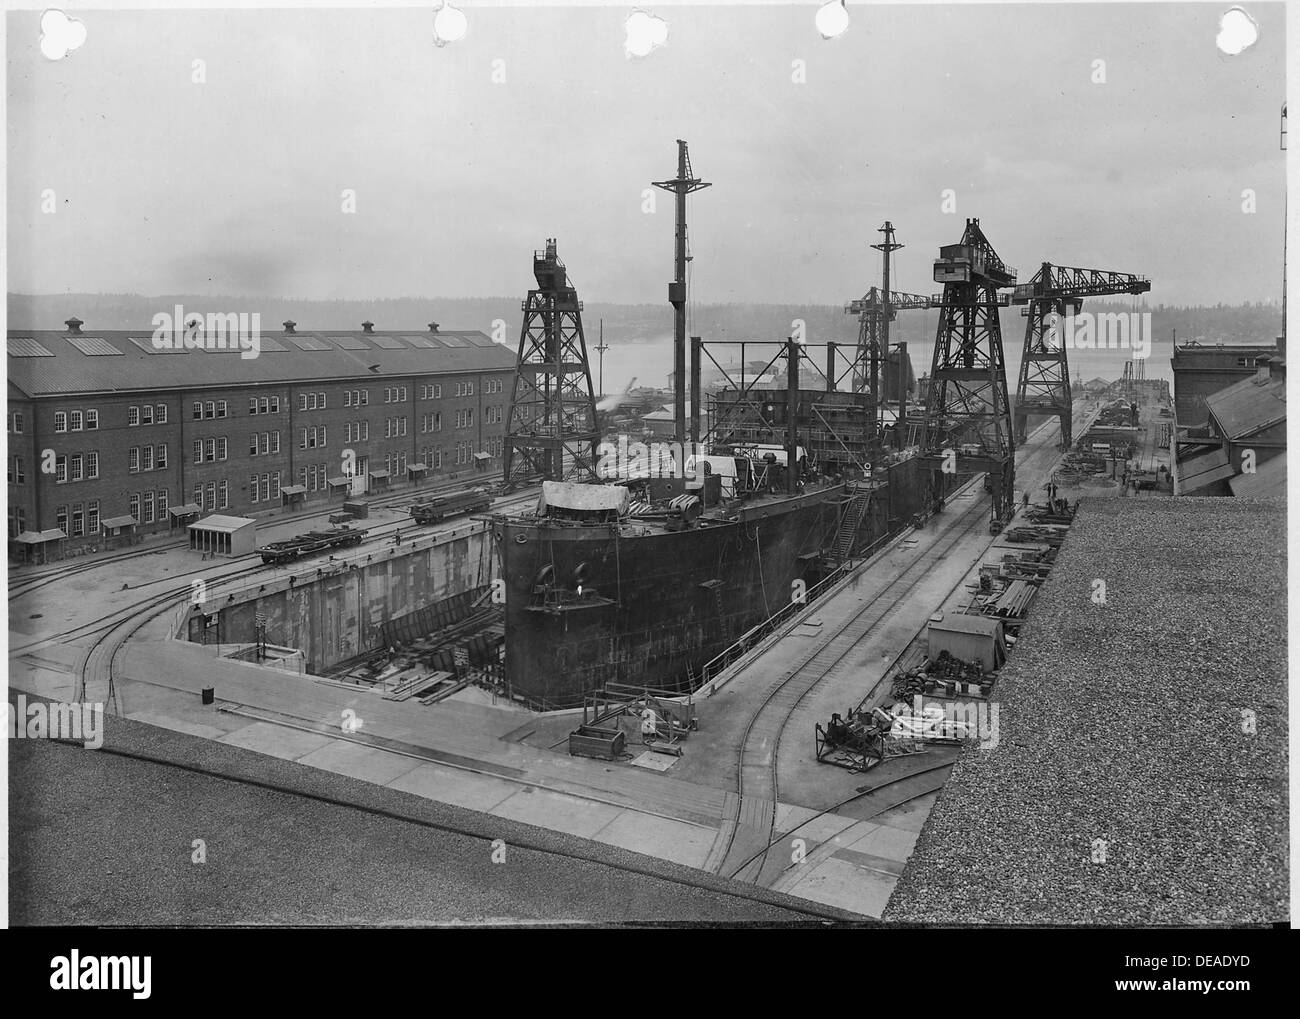 General view of Shipbuilding Dock with Ammunition Ships in process of construction. 299640 - Stock Image